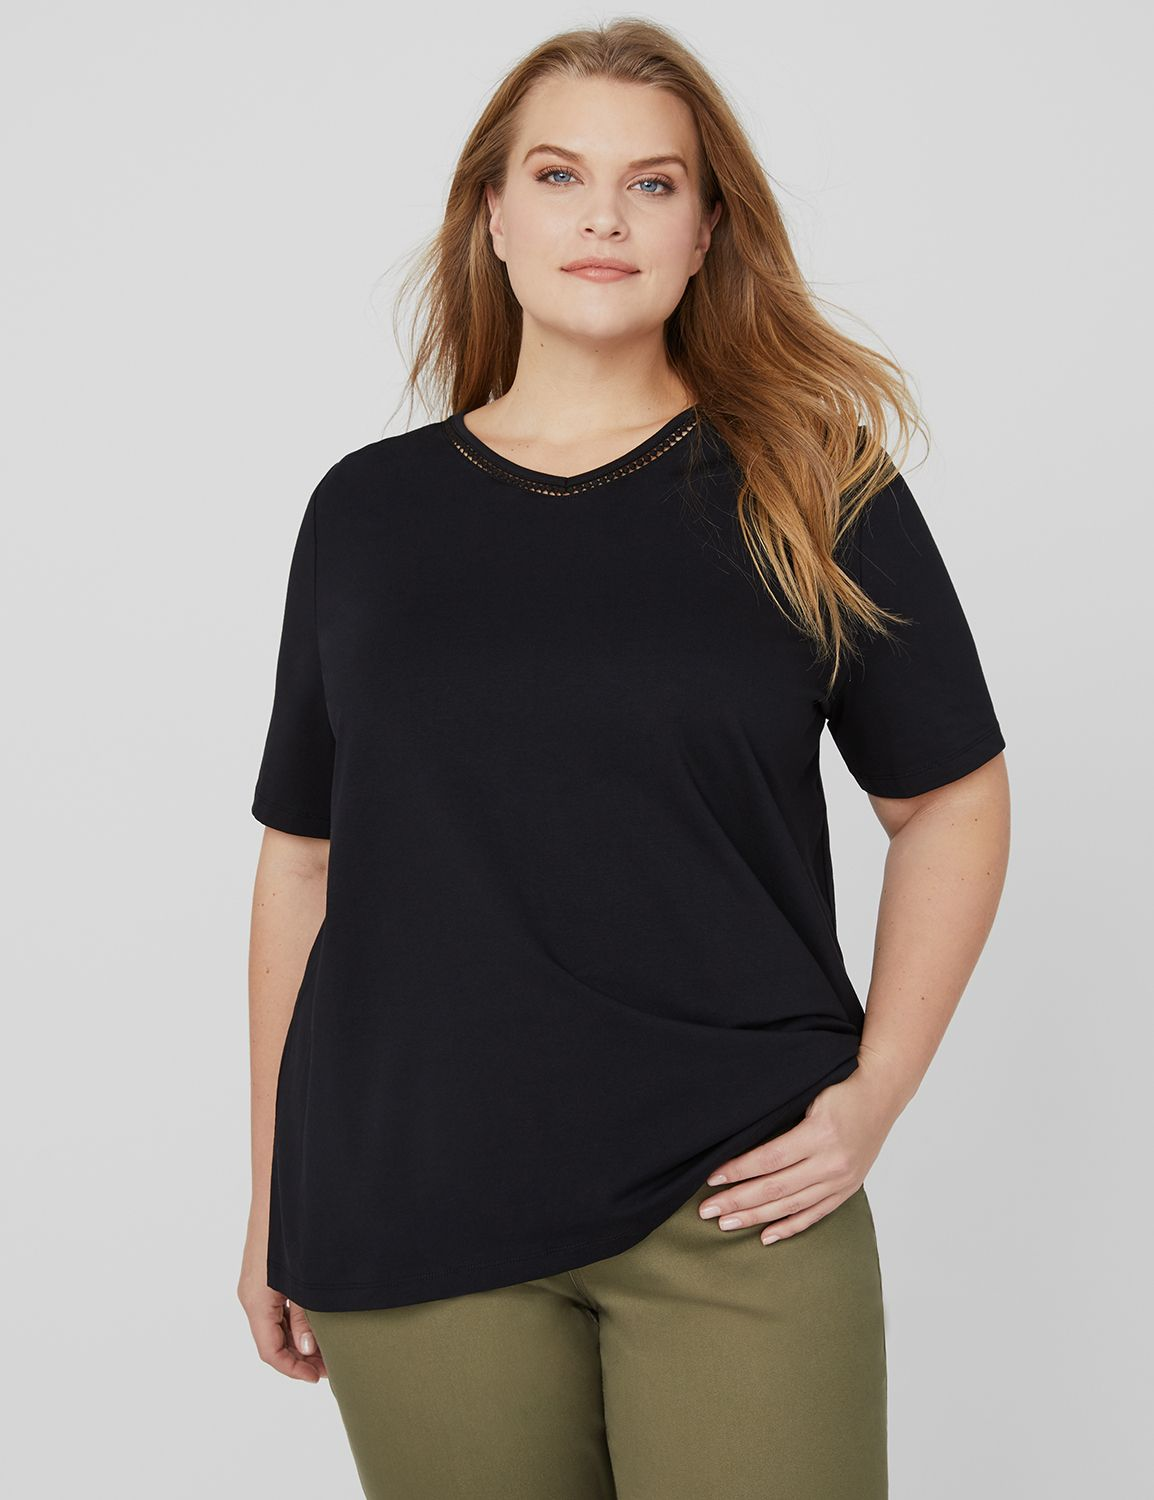 Suprema Lavish Tee 1087747 SS Basic Vneck with trim- S MP-300101120